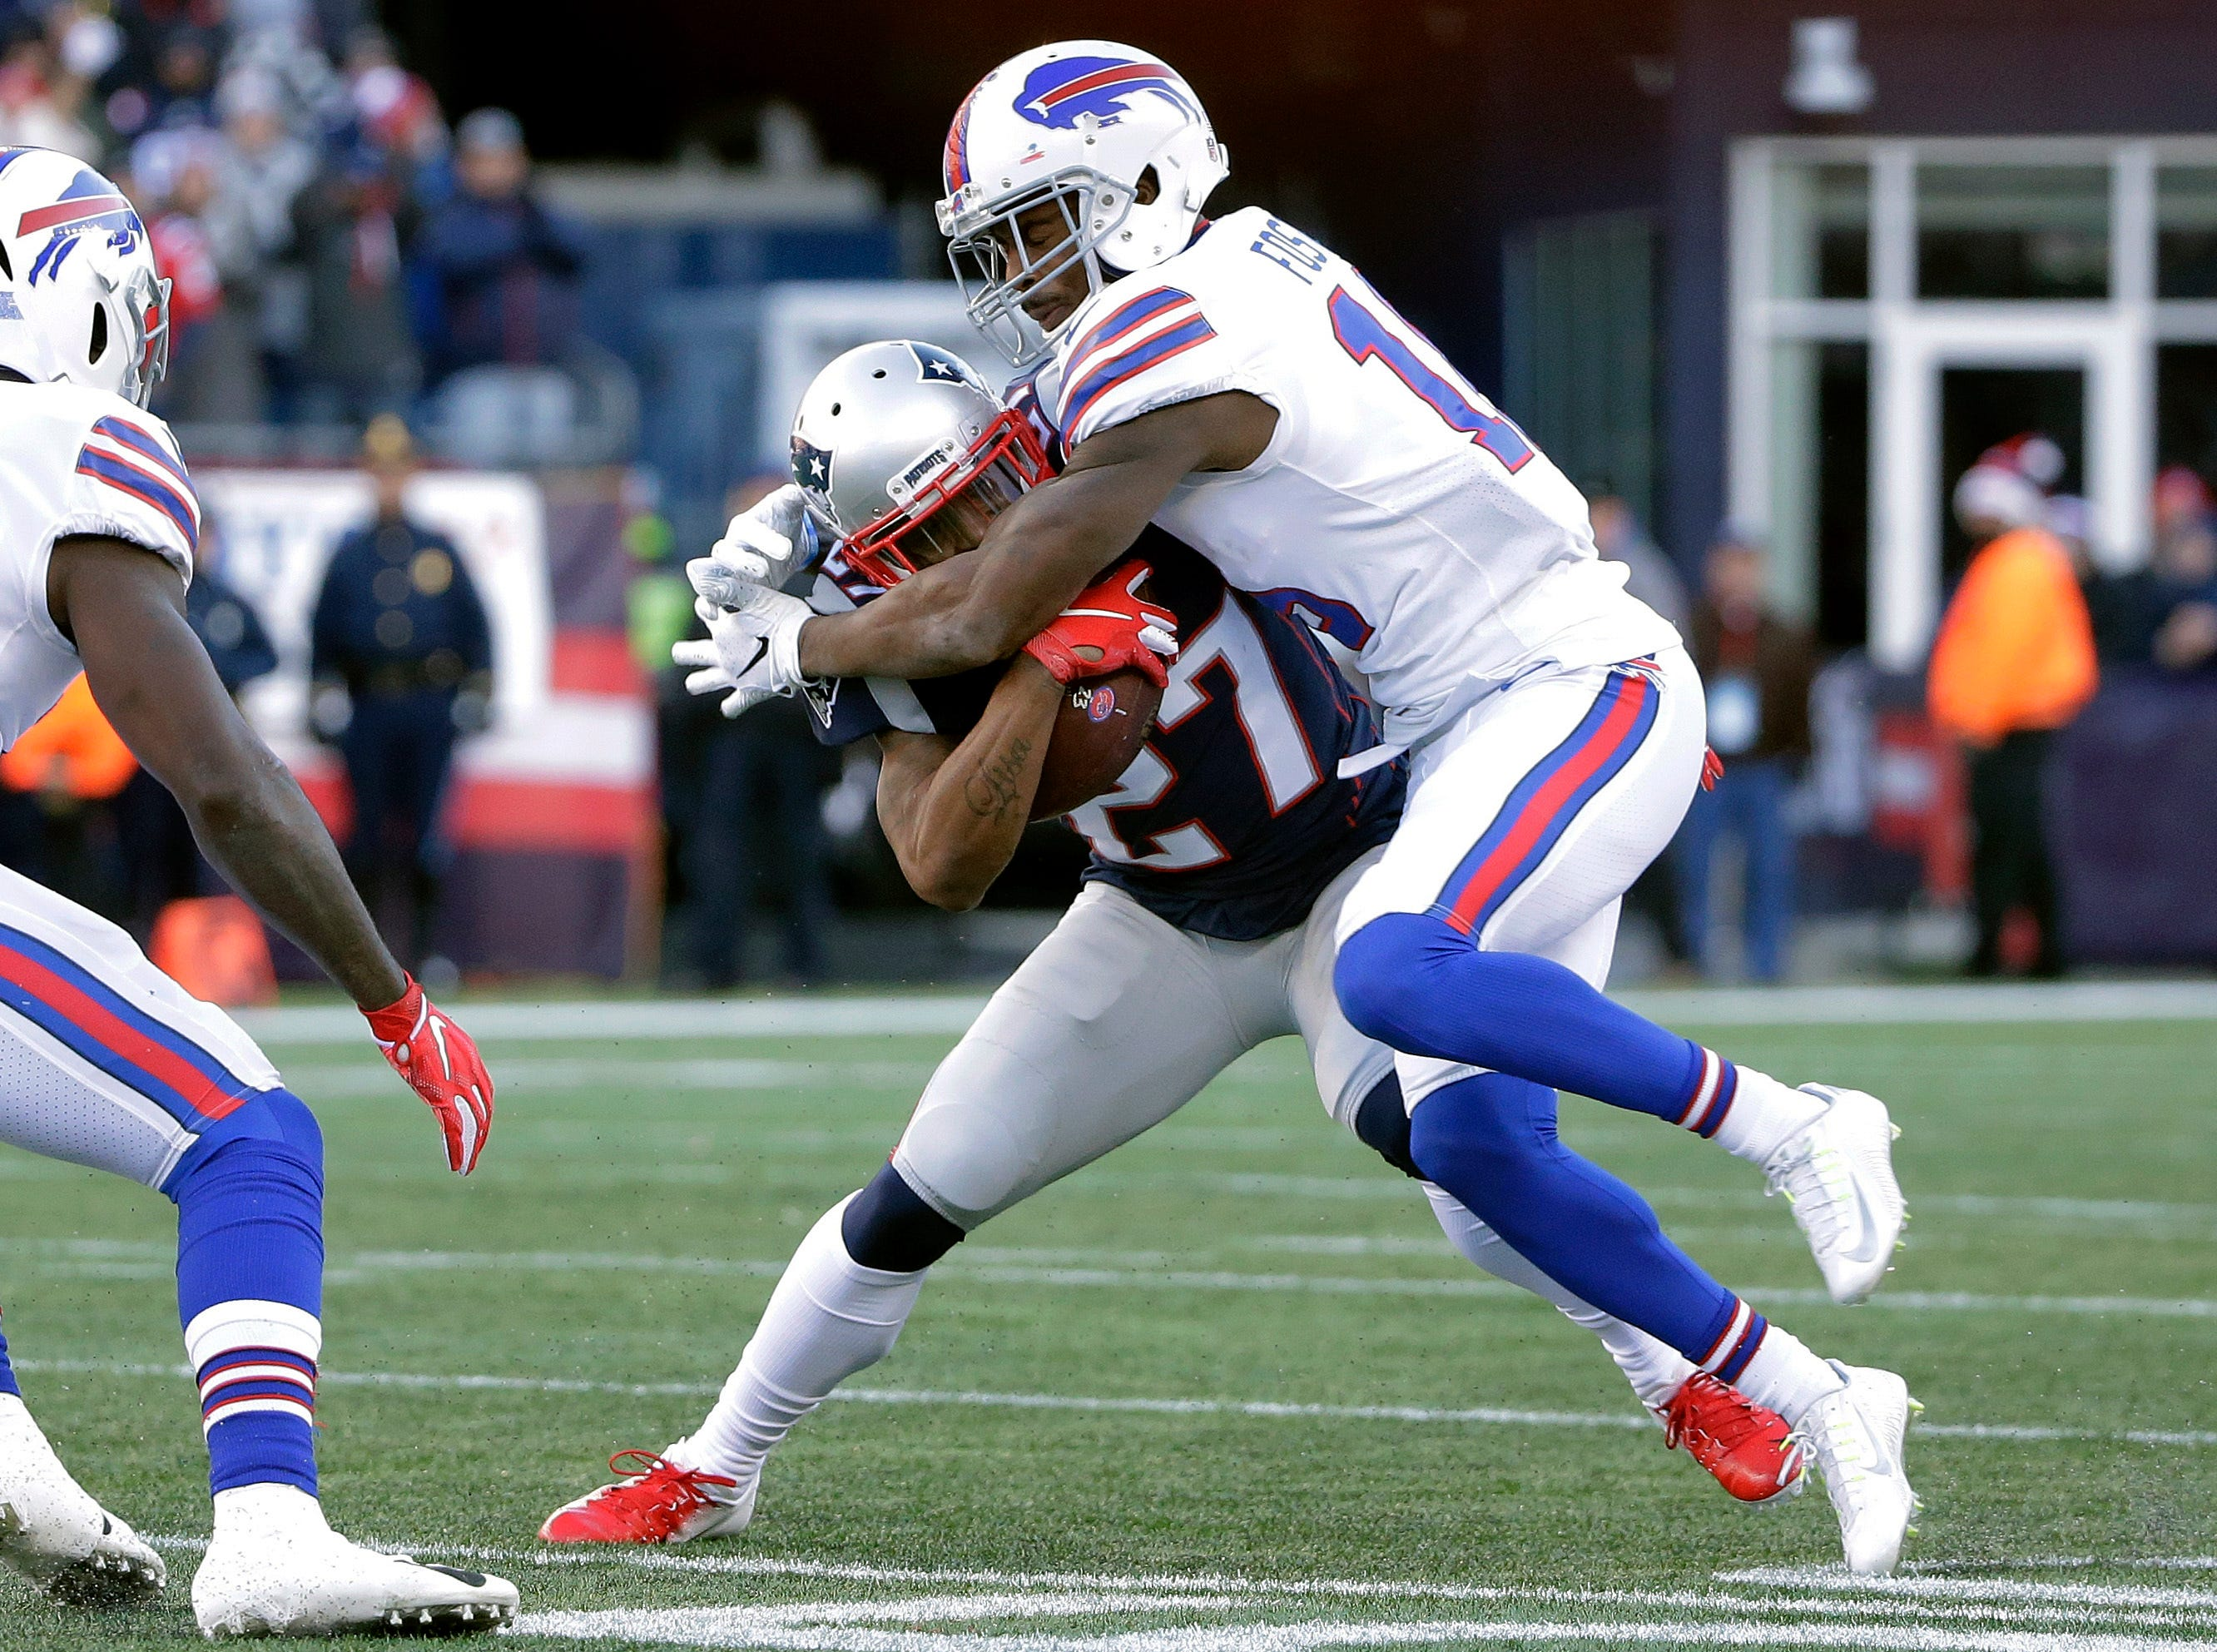 Buffalo Bills wide receiver Robert Foster, right, tackles New England Patriots defensive back J.C. Jackson (27), who intercepted a pass during the first half of an NFL football game, Sunday, Dec. 23, 2018, in Foxborough, Mass. (AP Photo/Steven Senne)